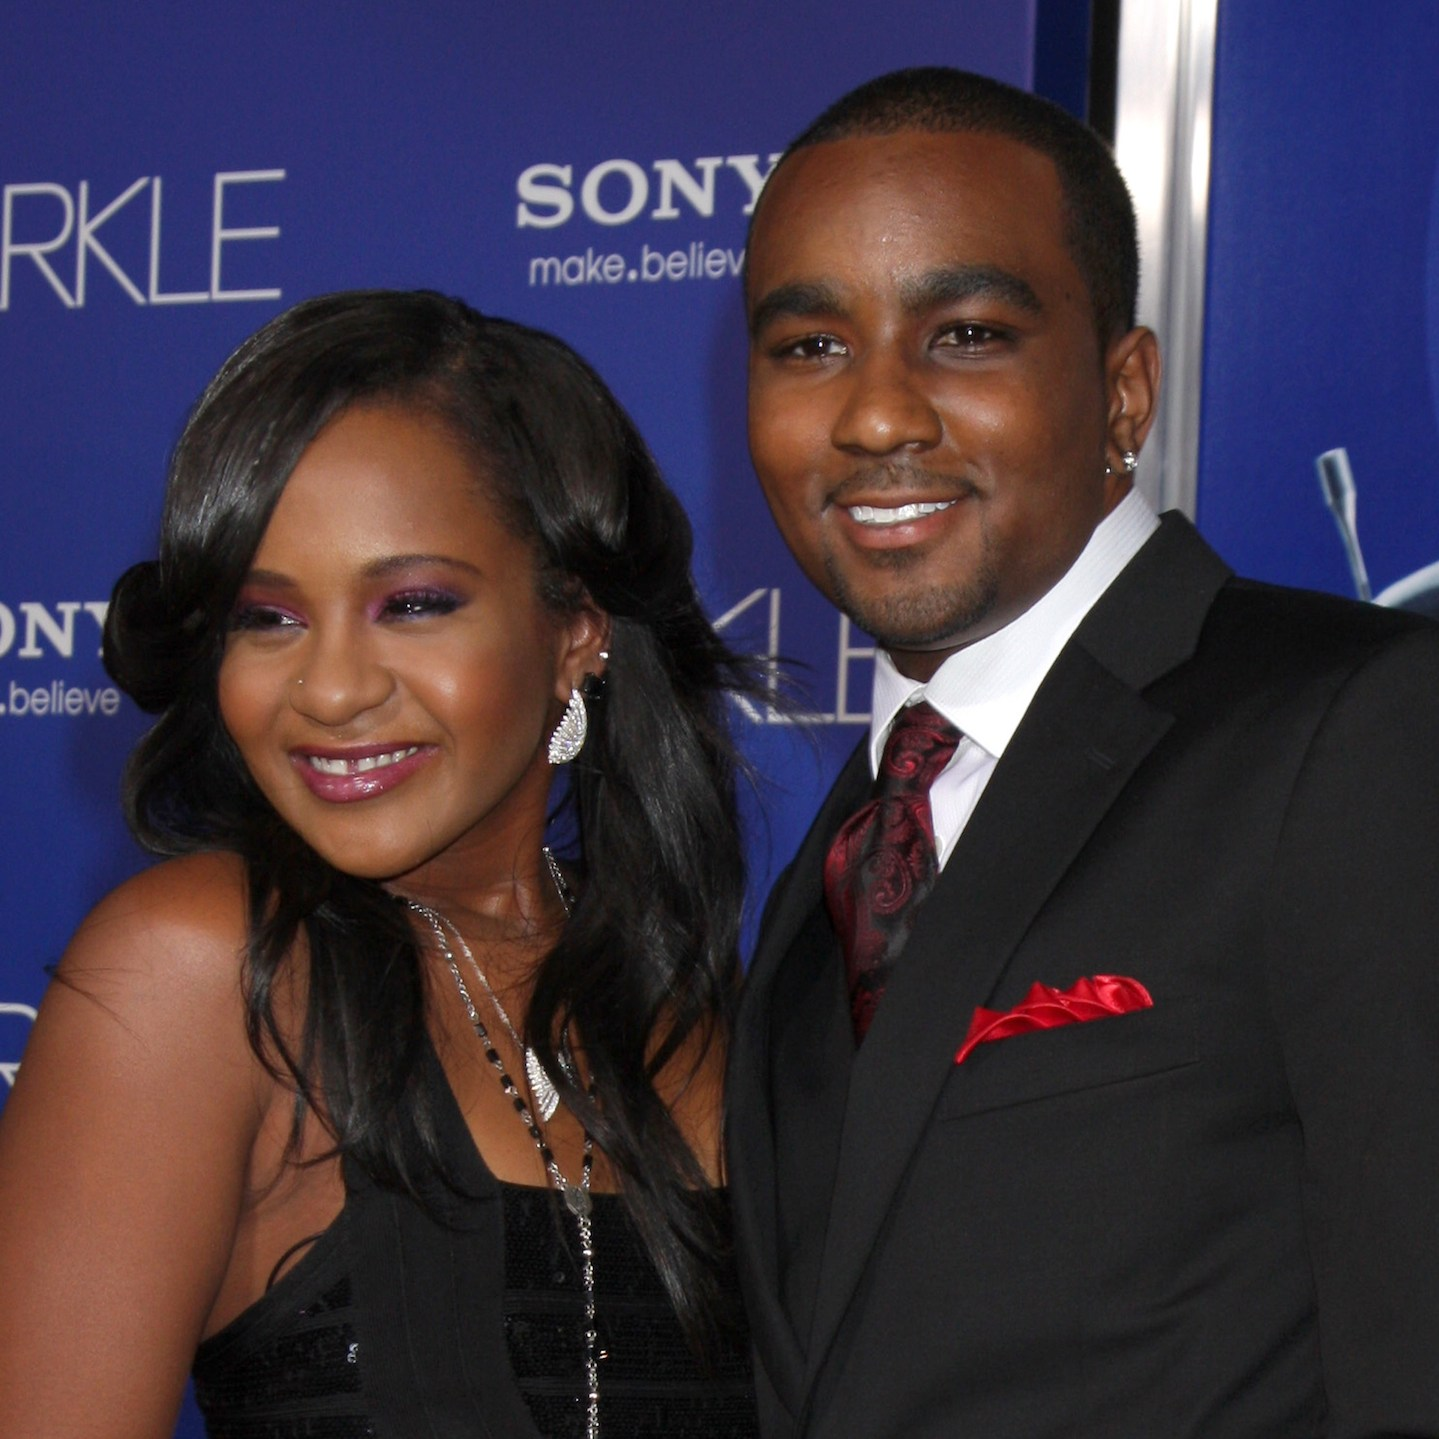 Nick Gordon, Bobbi Kristina Brown's Former Boyfriend, Arrested for Domestic Violence